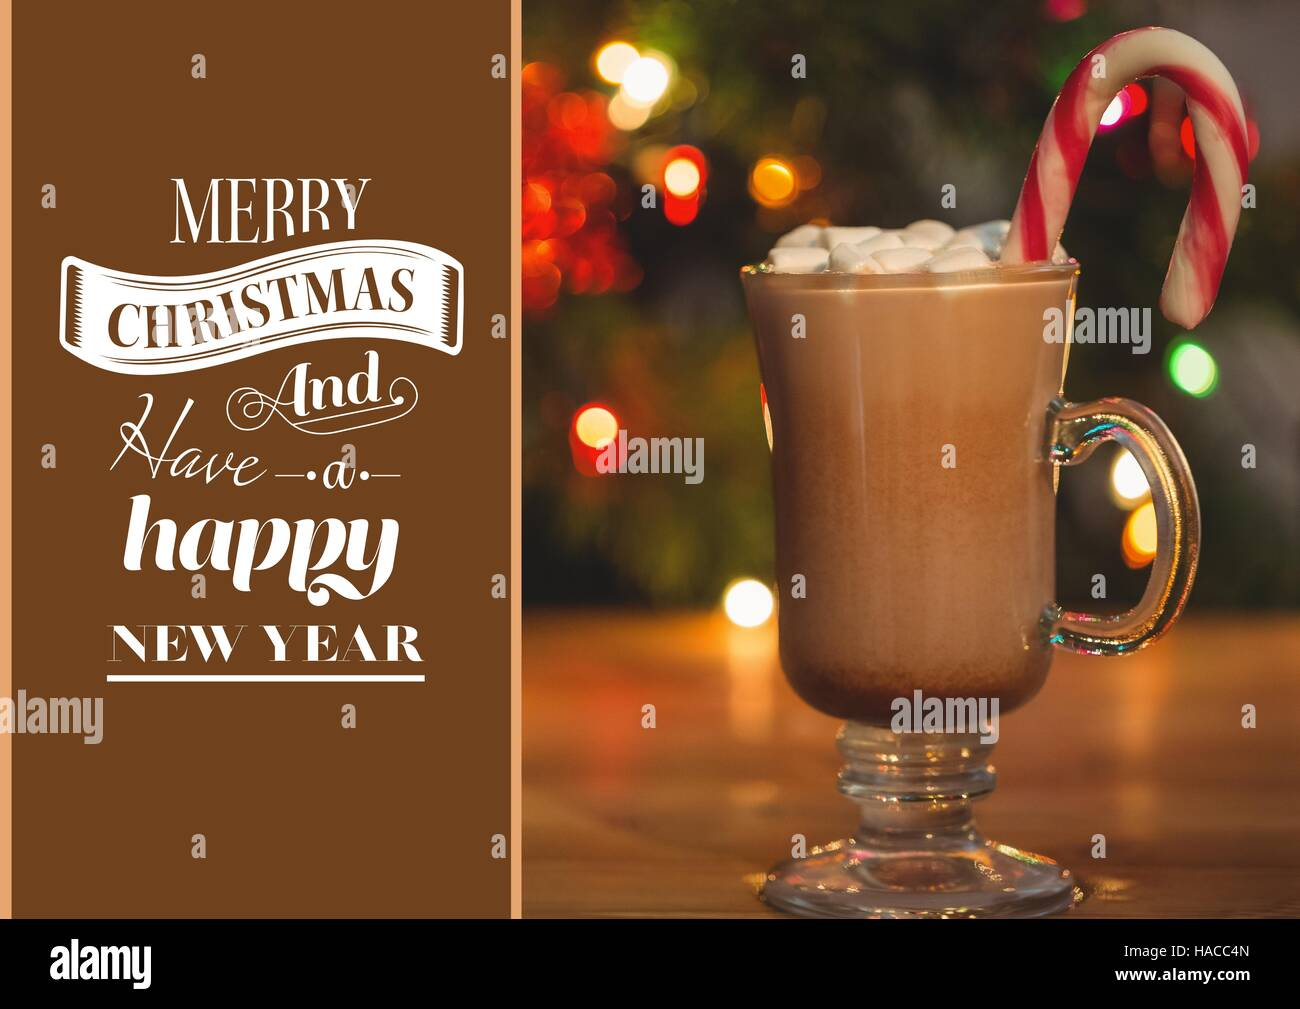 Composite image of merry christmas wishes and a cup of hot chocolate composite image of merry christmas wishes and a cup of hot chocolate with marshmallows and candy can m4hsunfo